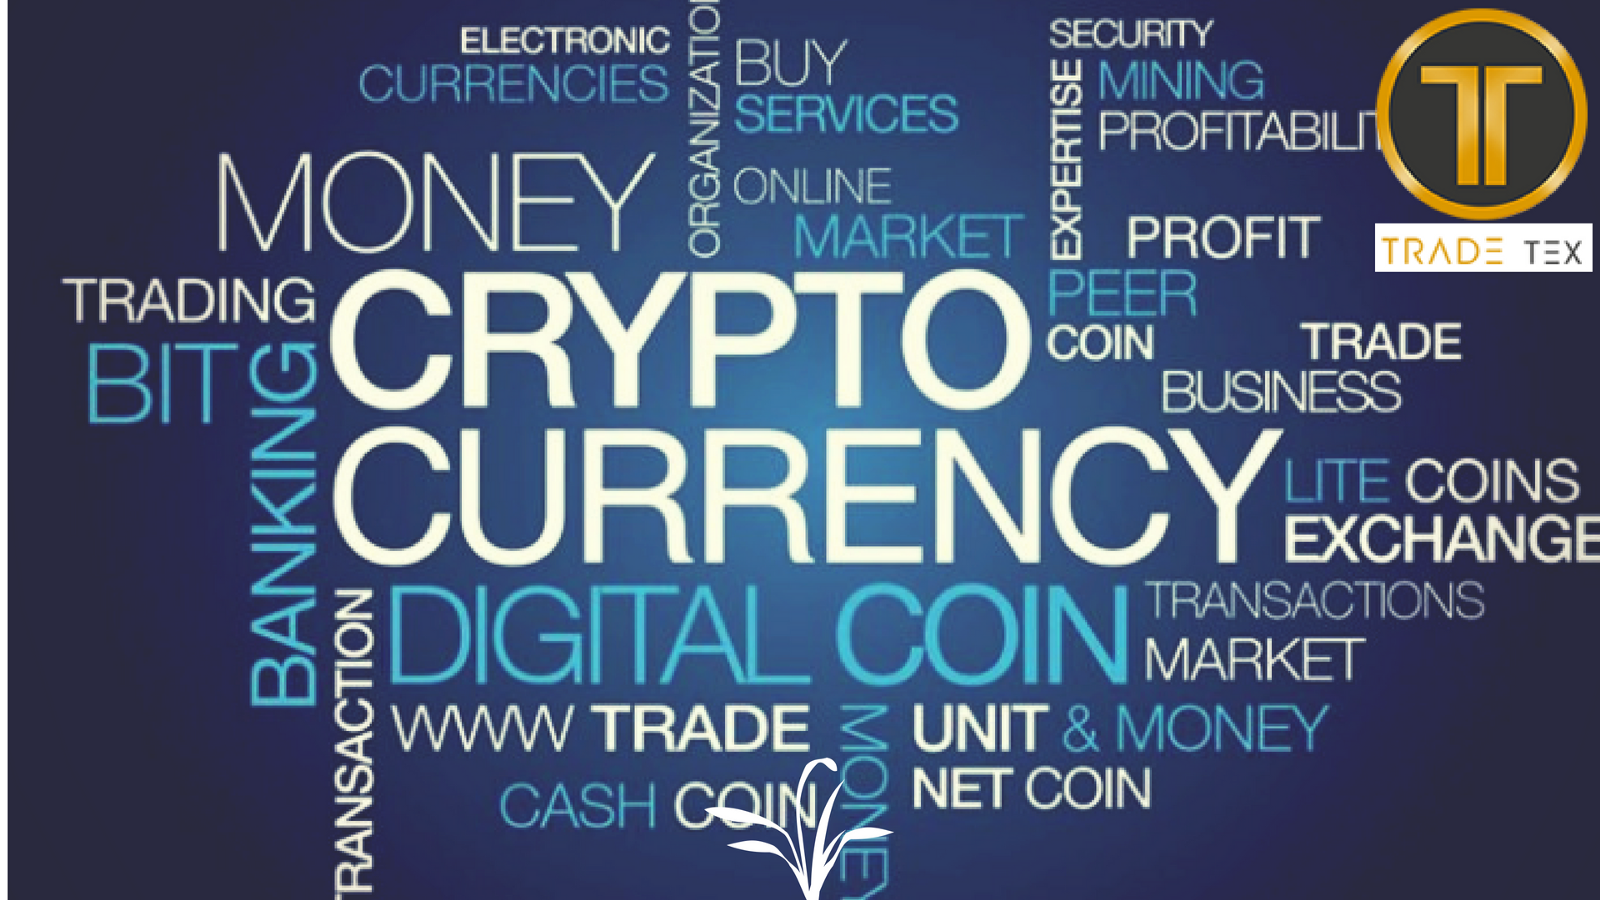 What Is Online Currency Trading Market And How To Create Tradetex Wallet